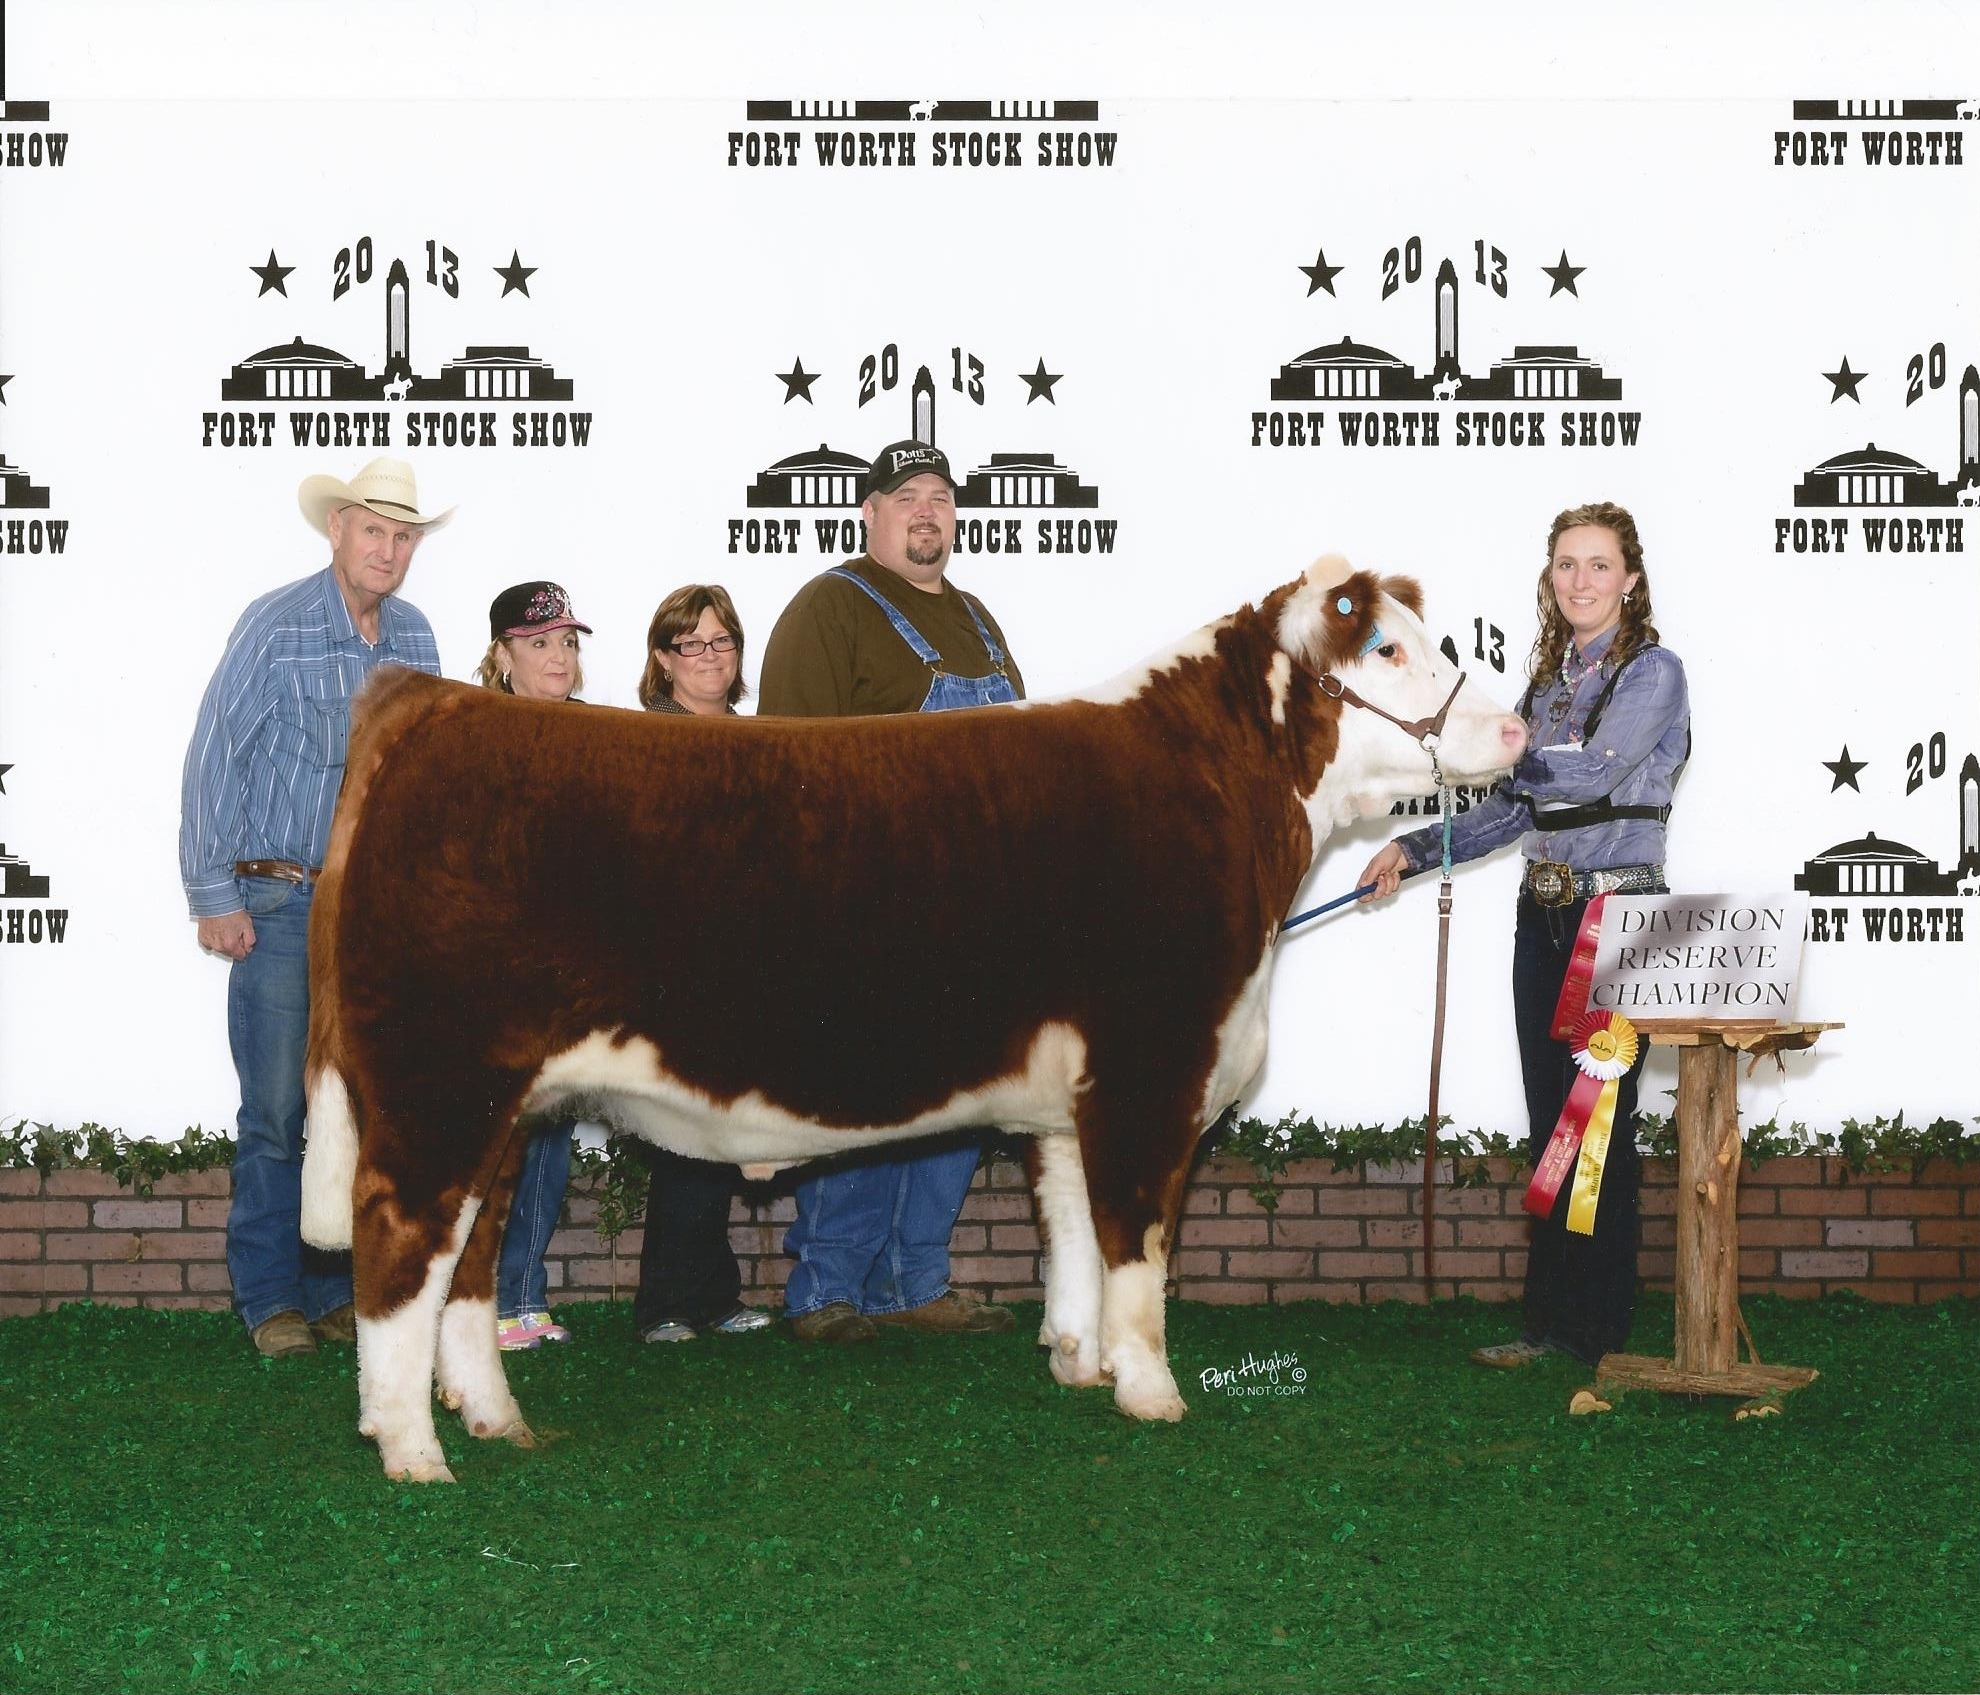 Reserve Champion Polled Hereford